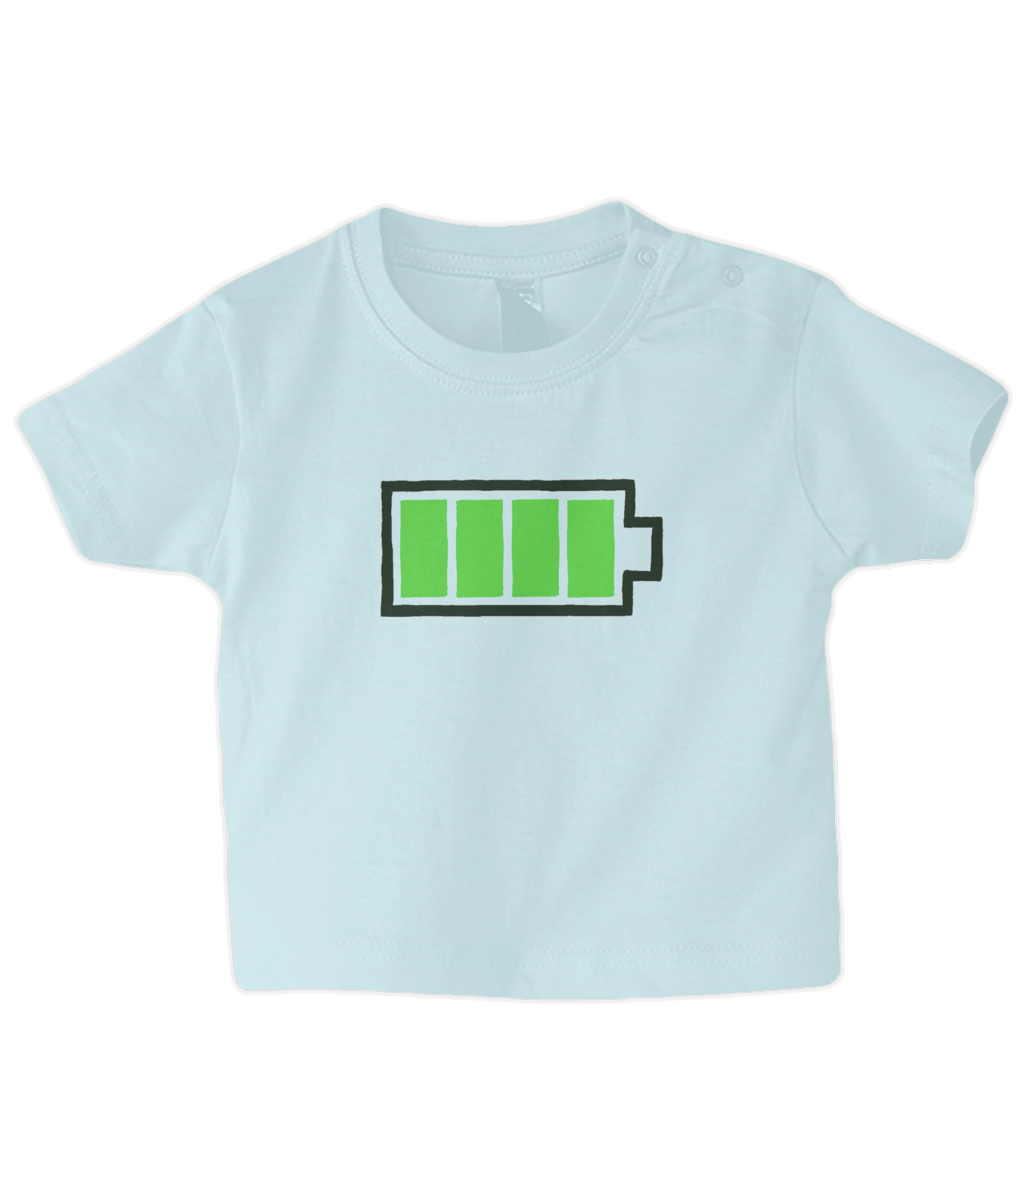 Full Battery Baby T Shirt